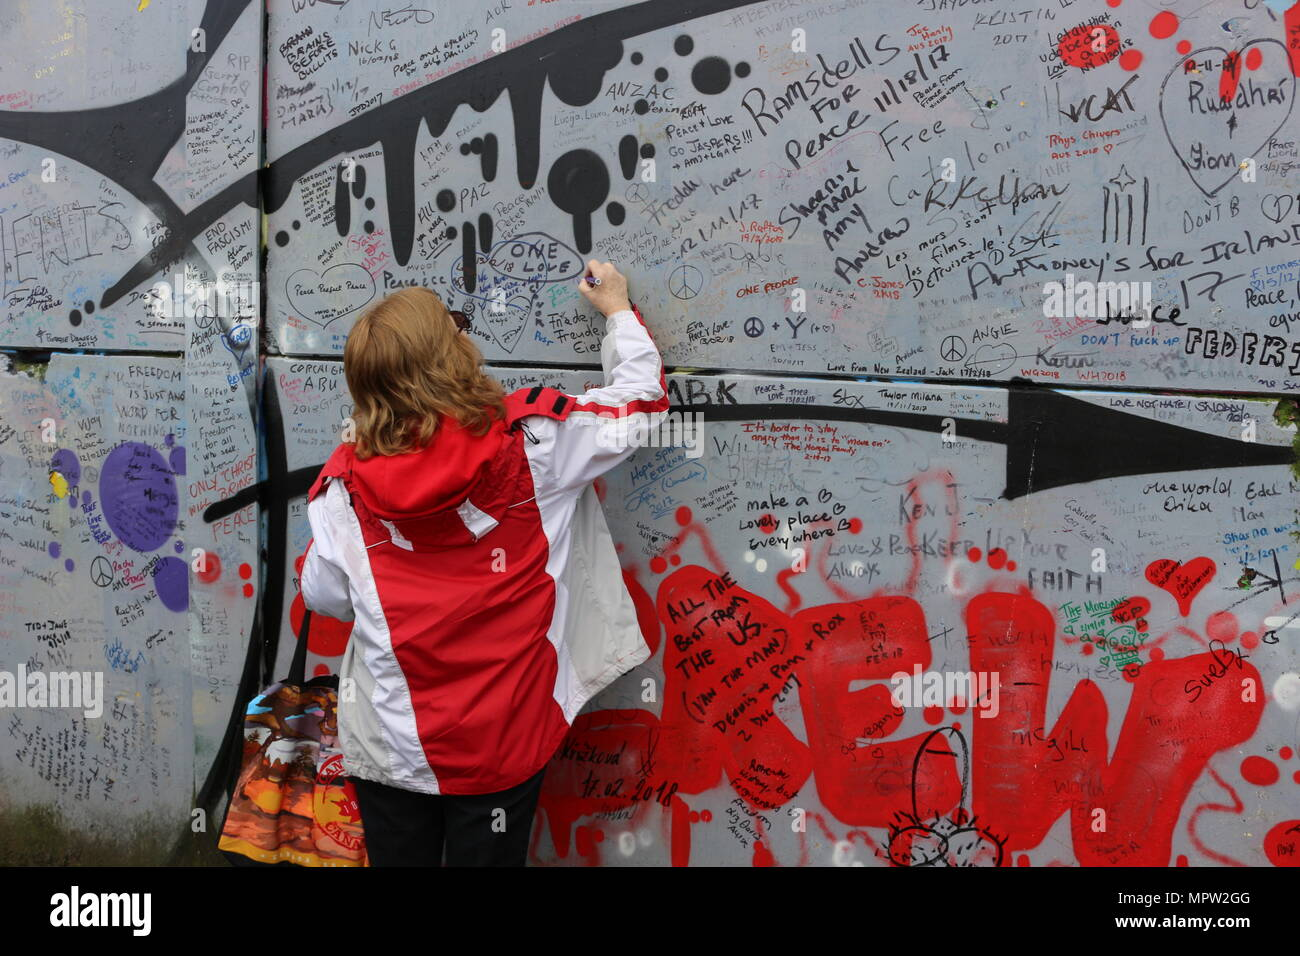 Tourist writes on the peace wall in Belfast that signifies the political peace that now occurs. - Stock Image